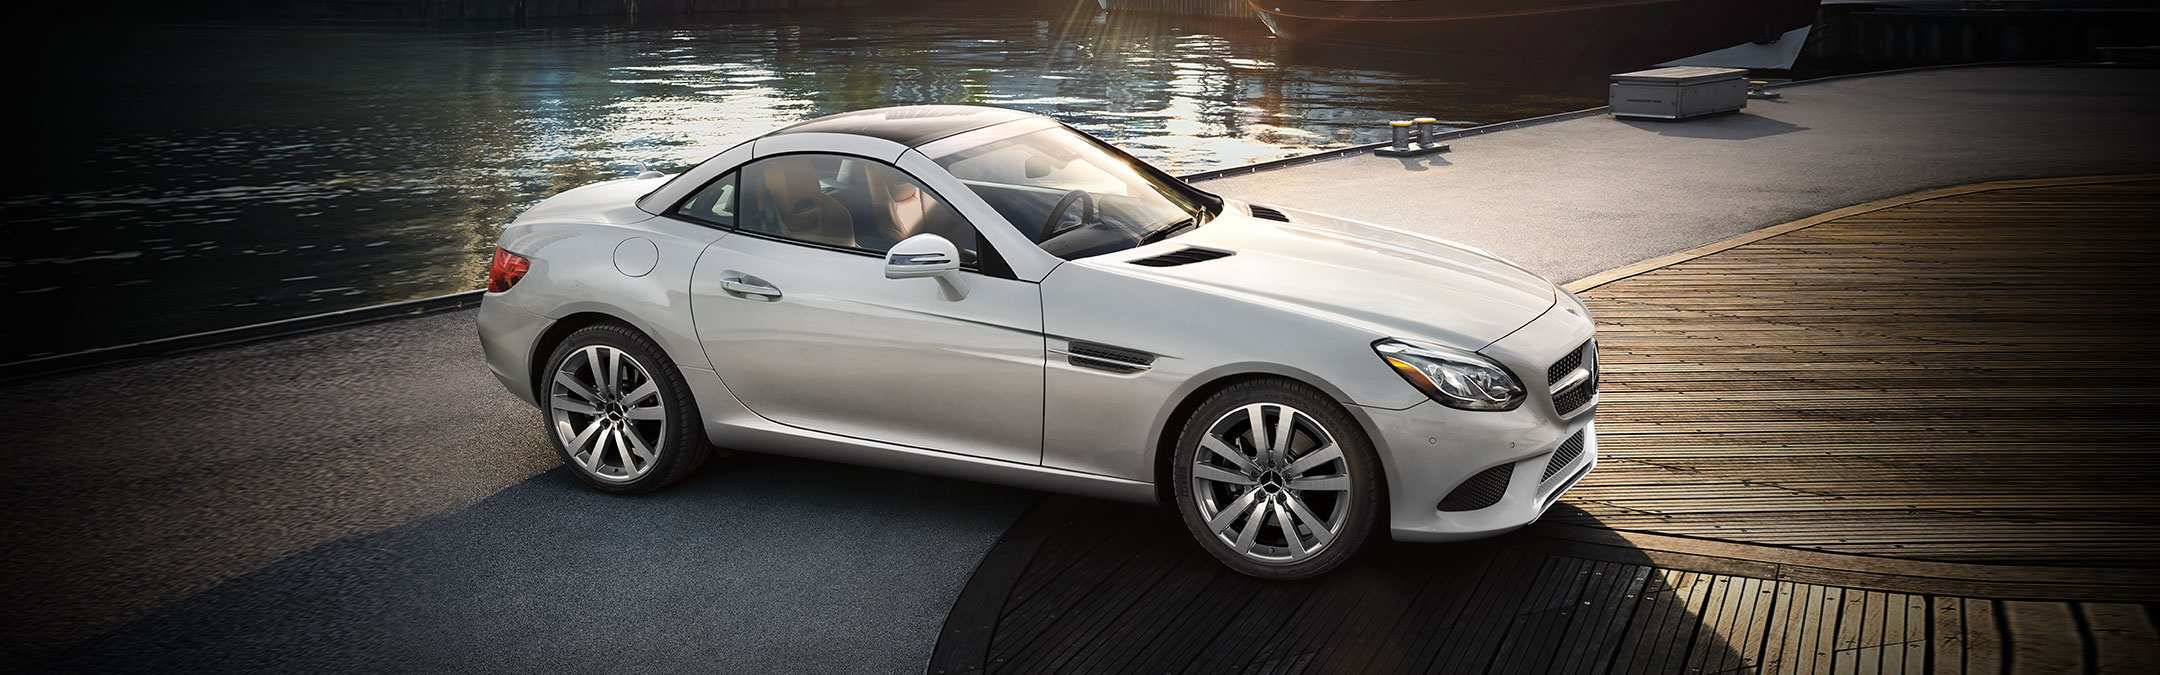 39 Great Mercedes Slc 2019 Spy Shoot by Mercedes Slc 2019